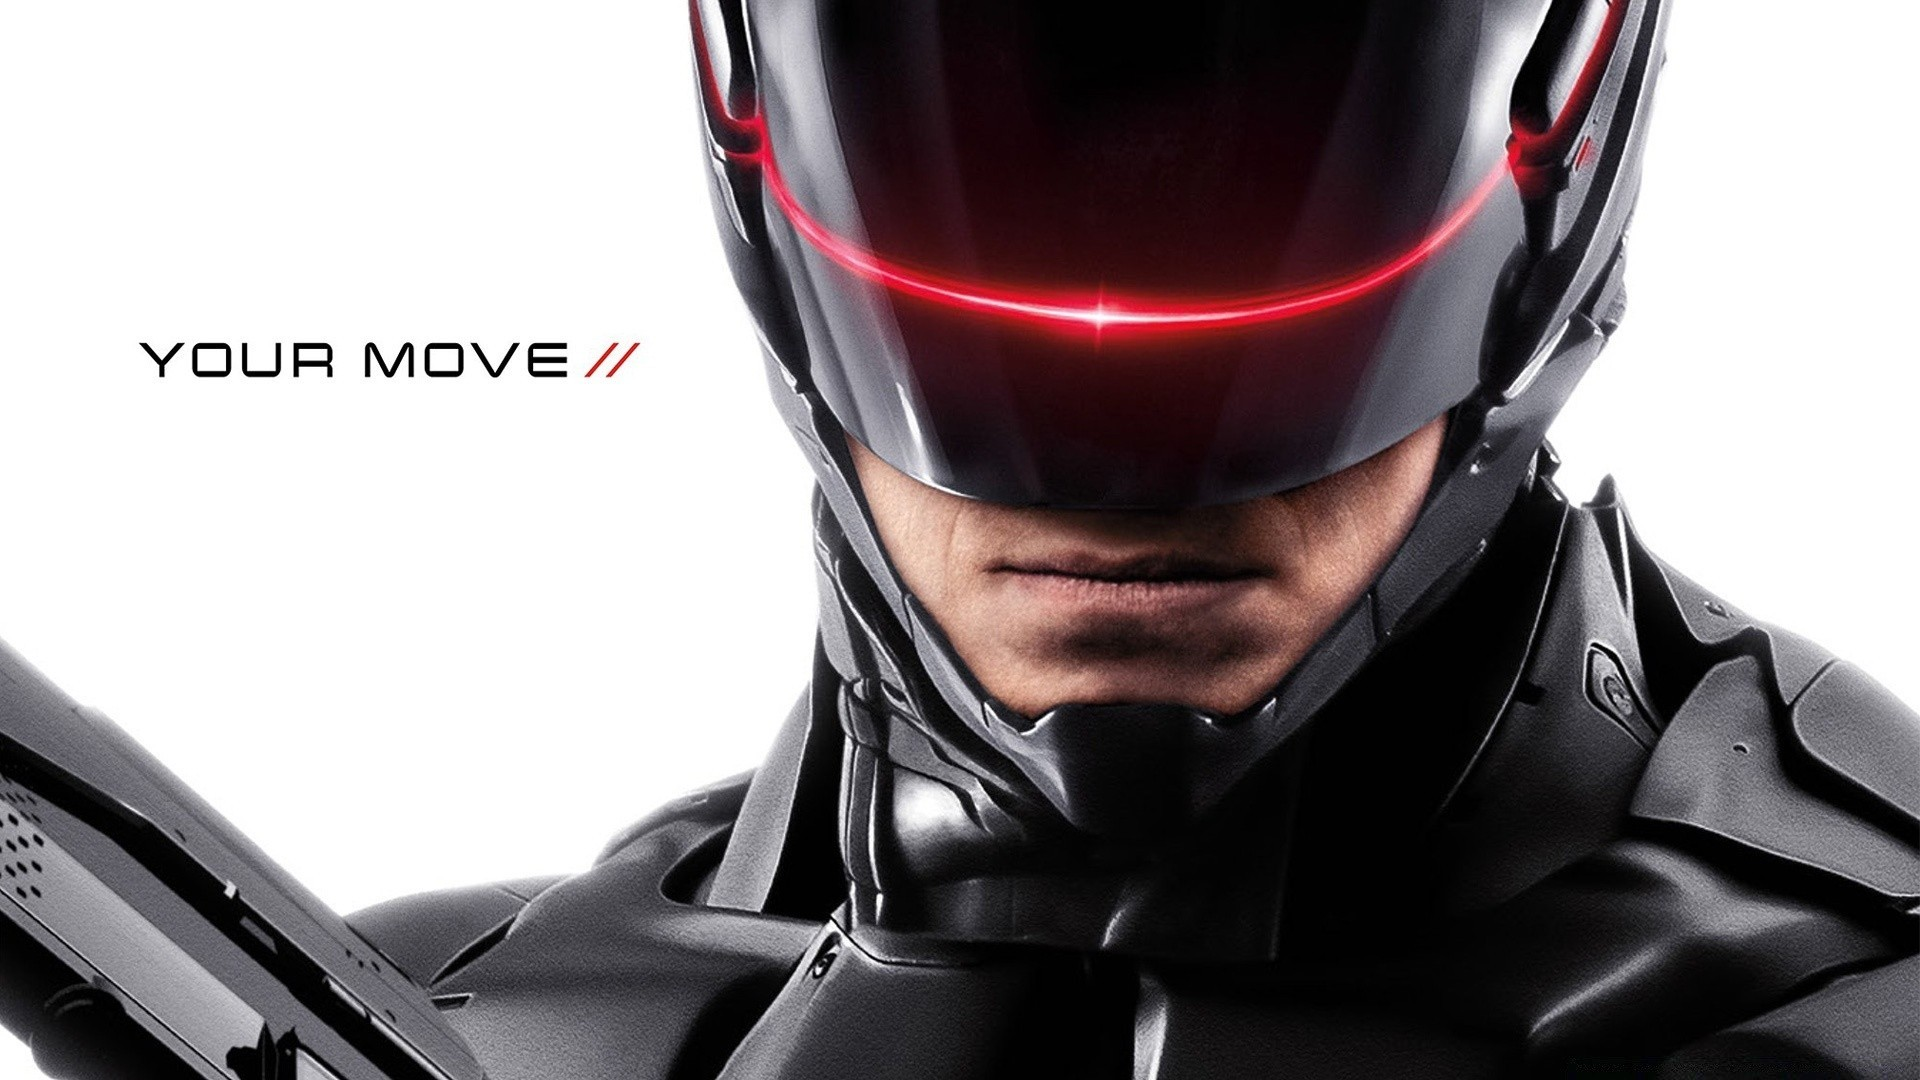 Robocop 2014 Movie Phone Wallpapers